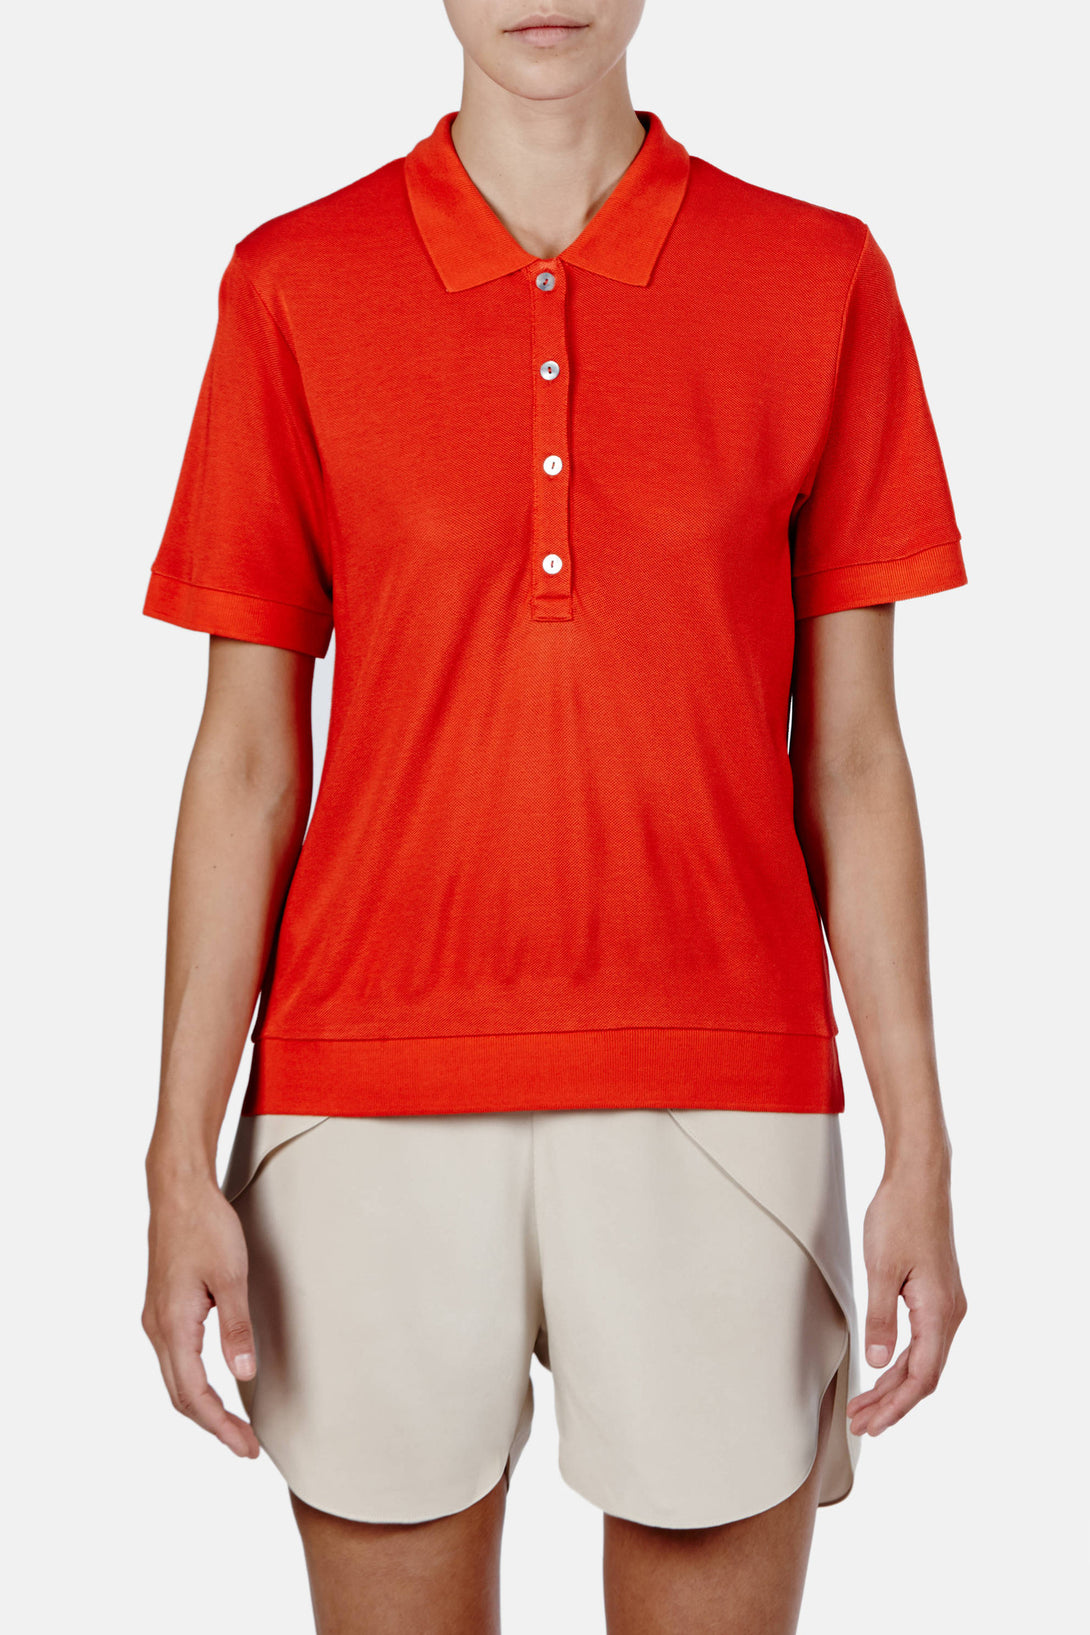 Kensington Pique Polo - Poinciana Orange